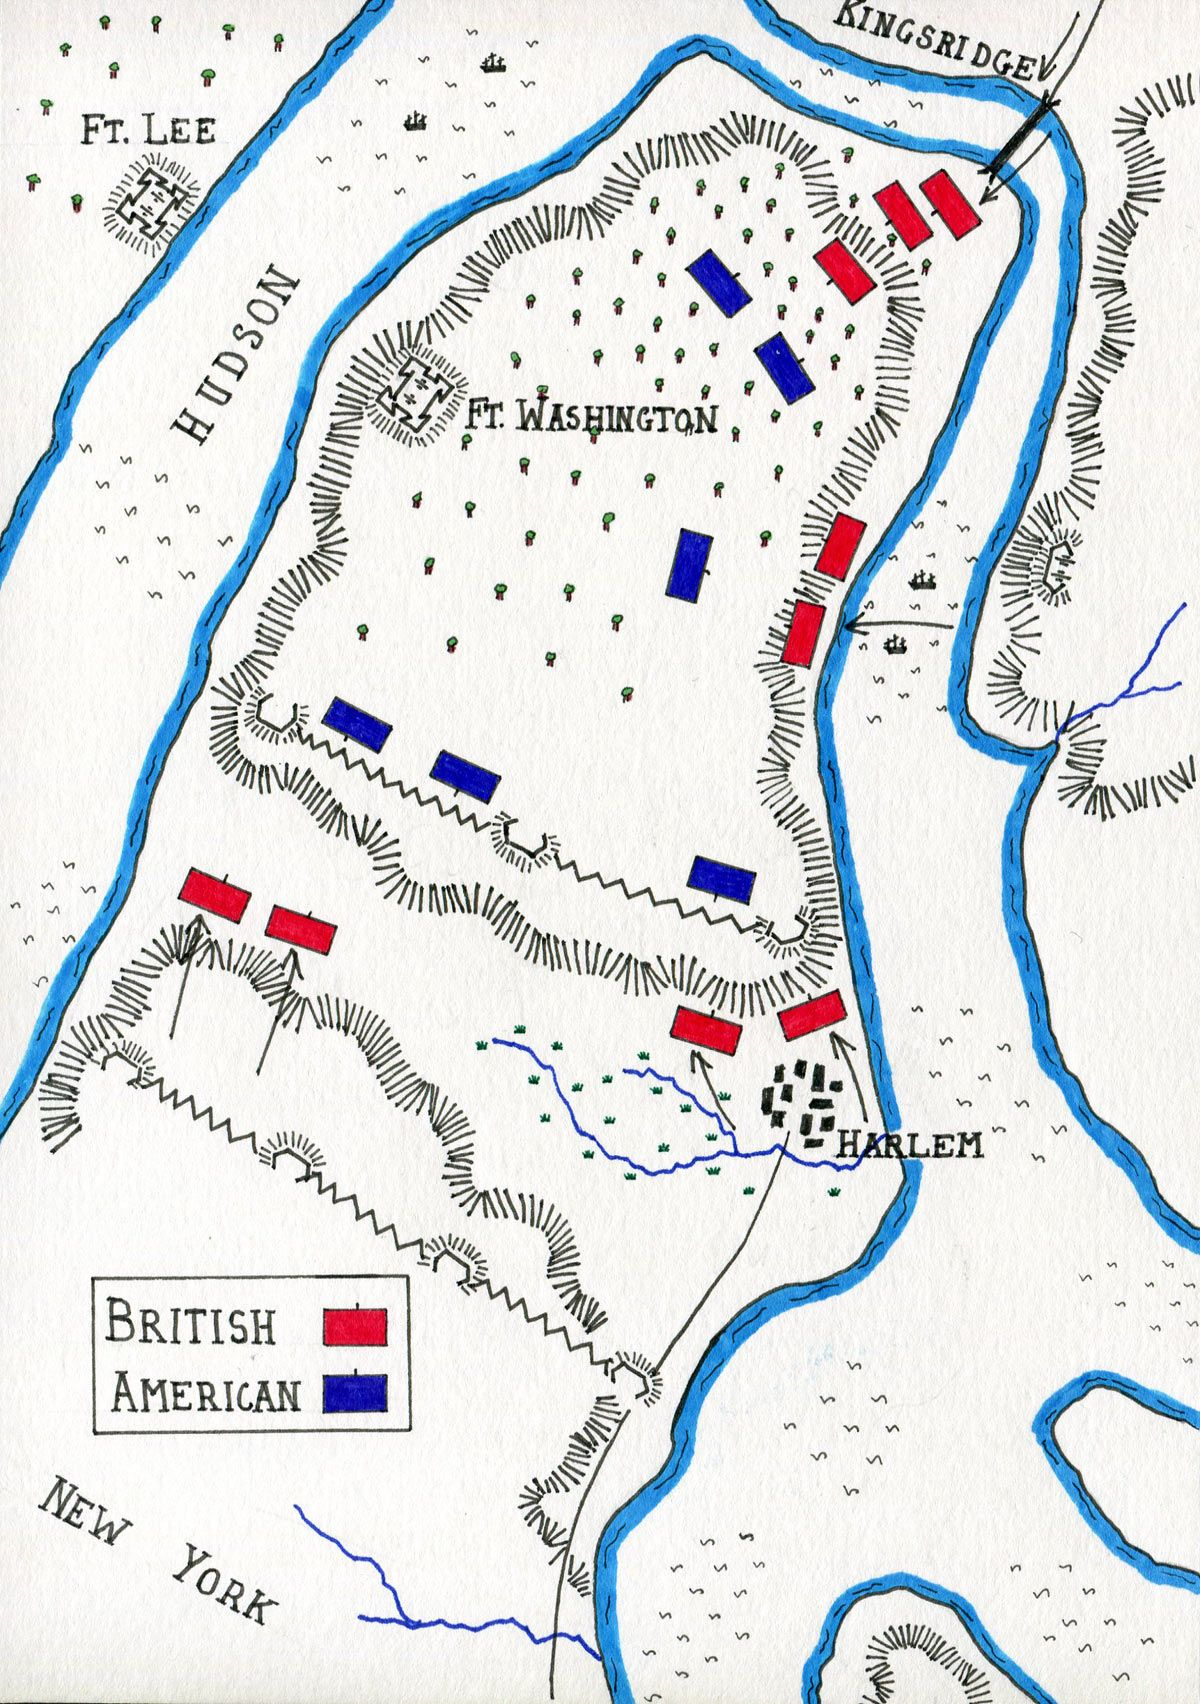 Map Of The Battle Of Fort Washington On 17th November